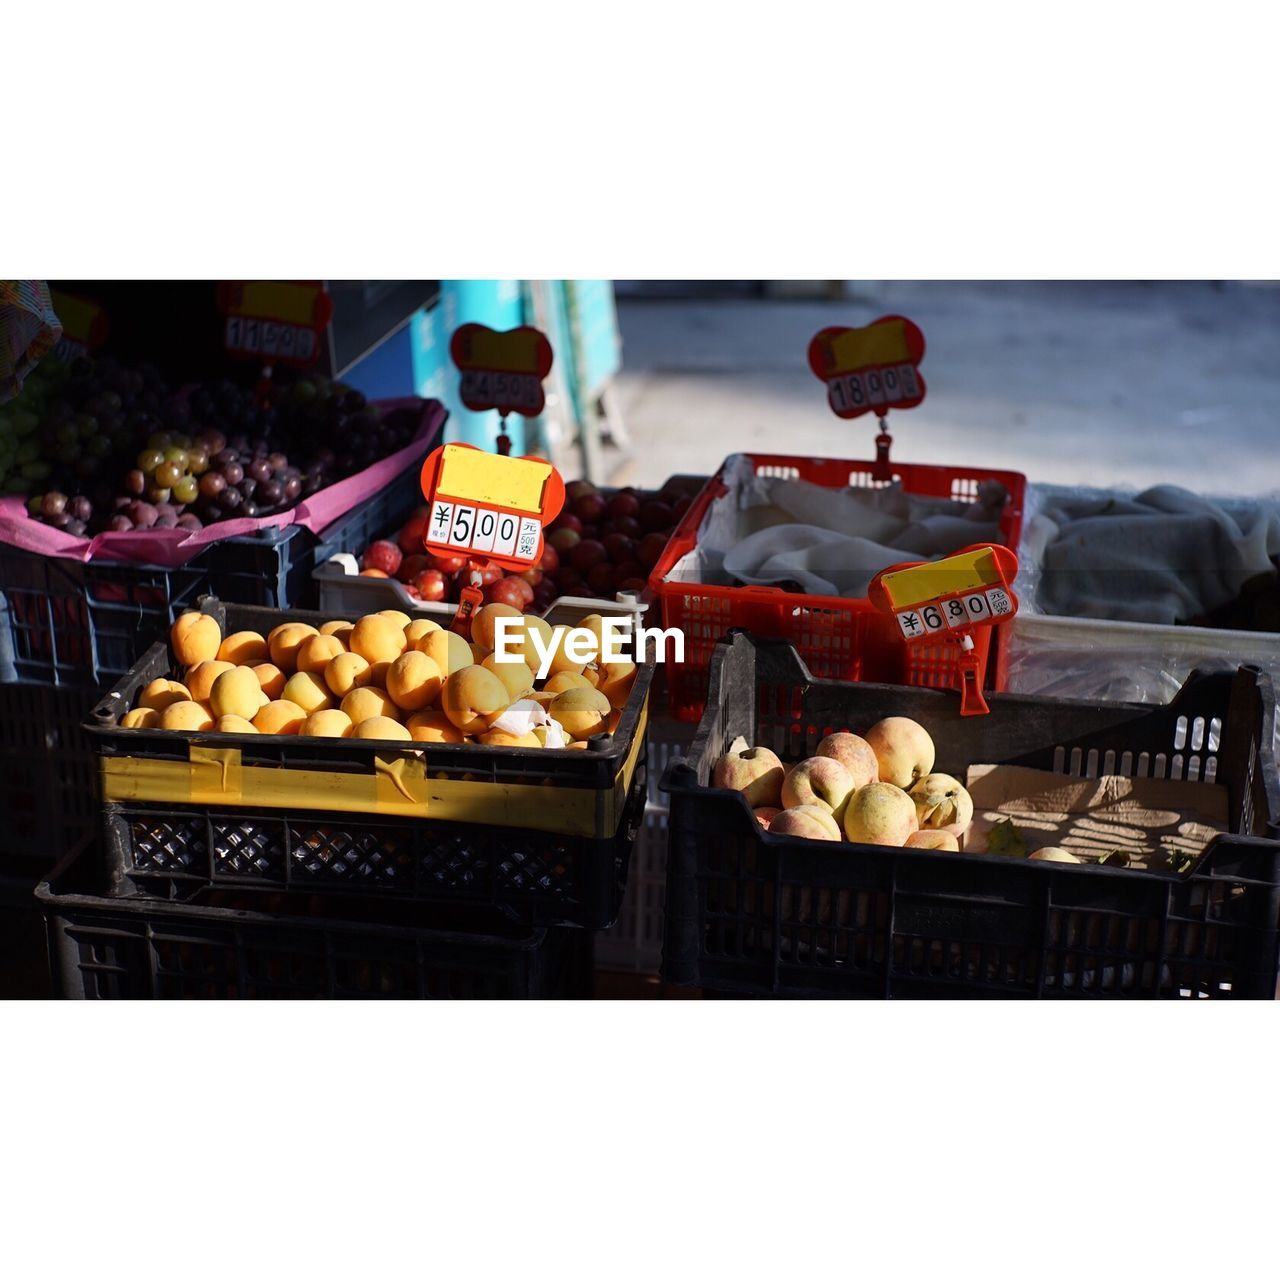 fruit, freshness, retail, food and drink, market stall, for sale, variation, healthy eating, price tag, food, market, choice, pear, consumerism, no people, day, outdoors